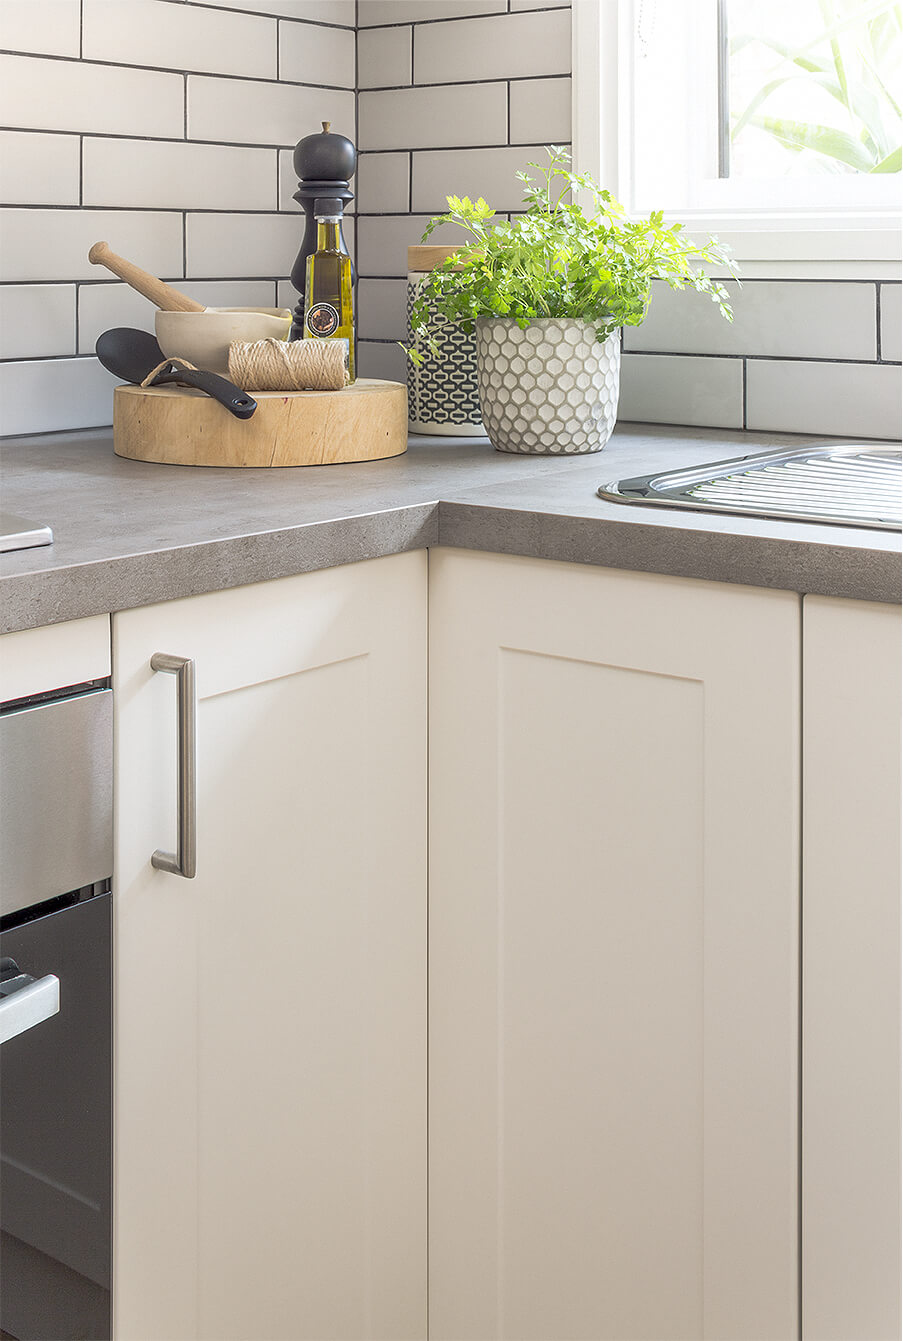 Home Sweet Home - Kitchen Inspiration And Ideas